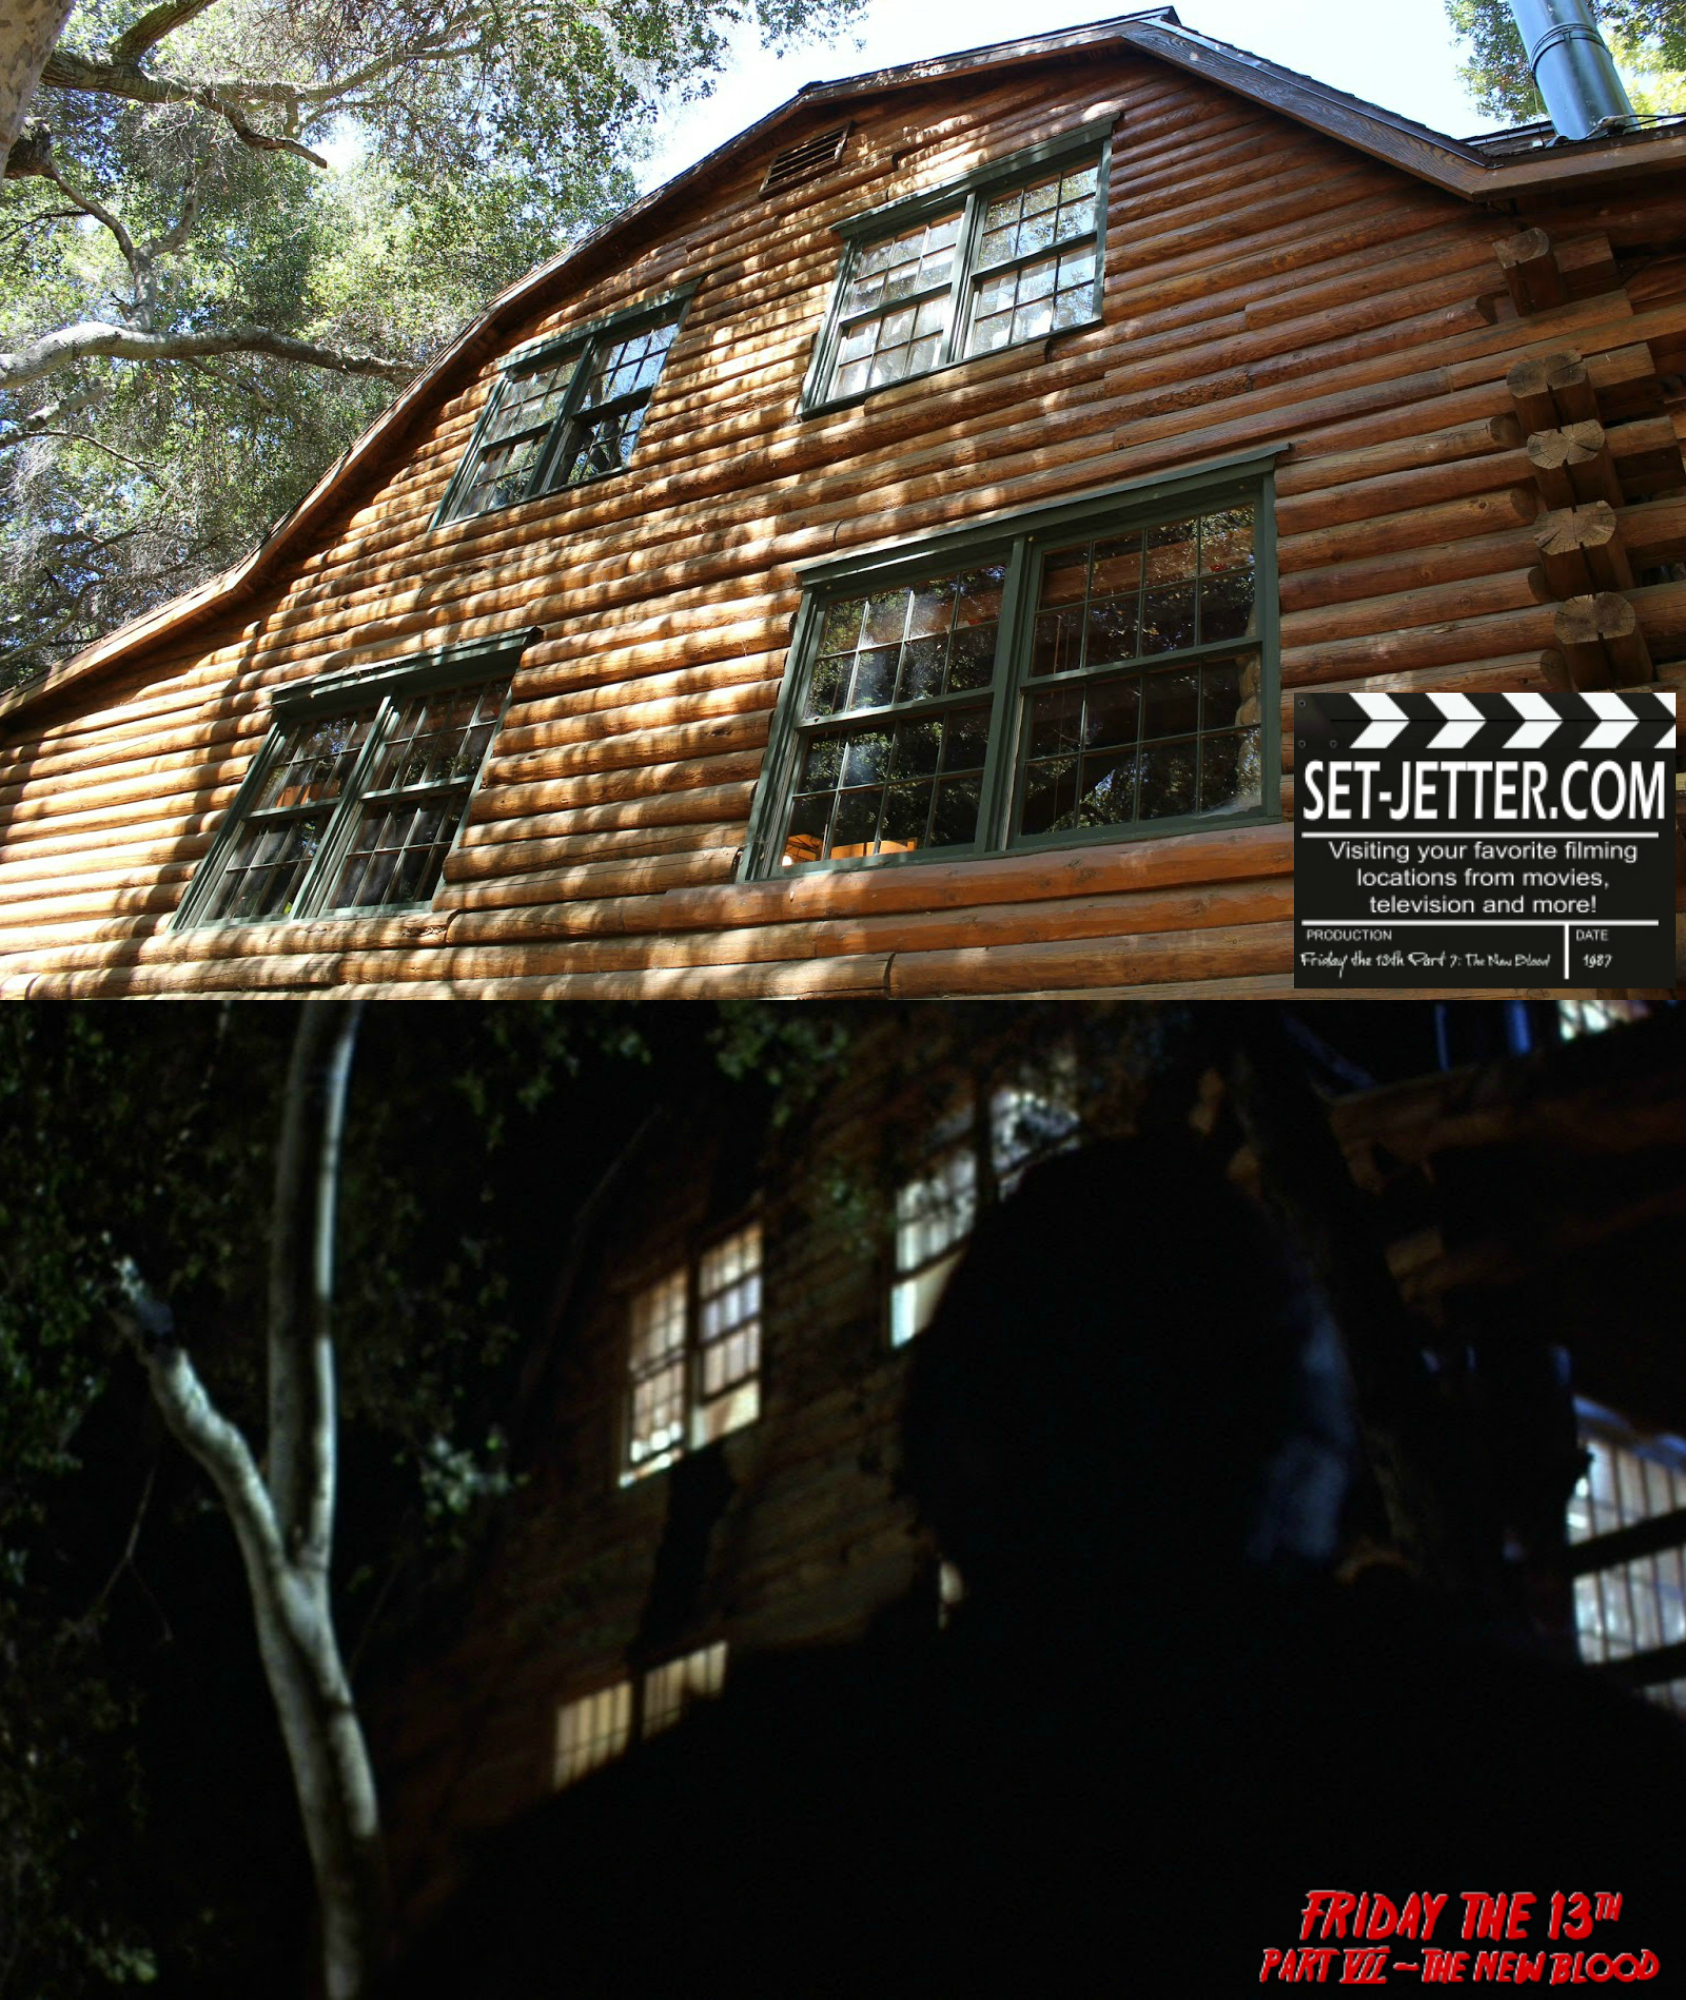 Friday the 13th Part VII comparison 01.jpg